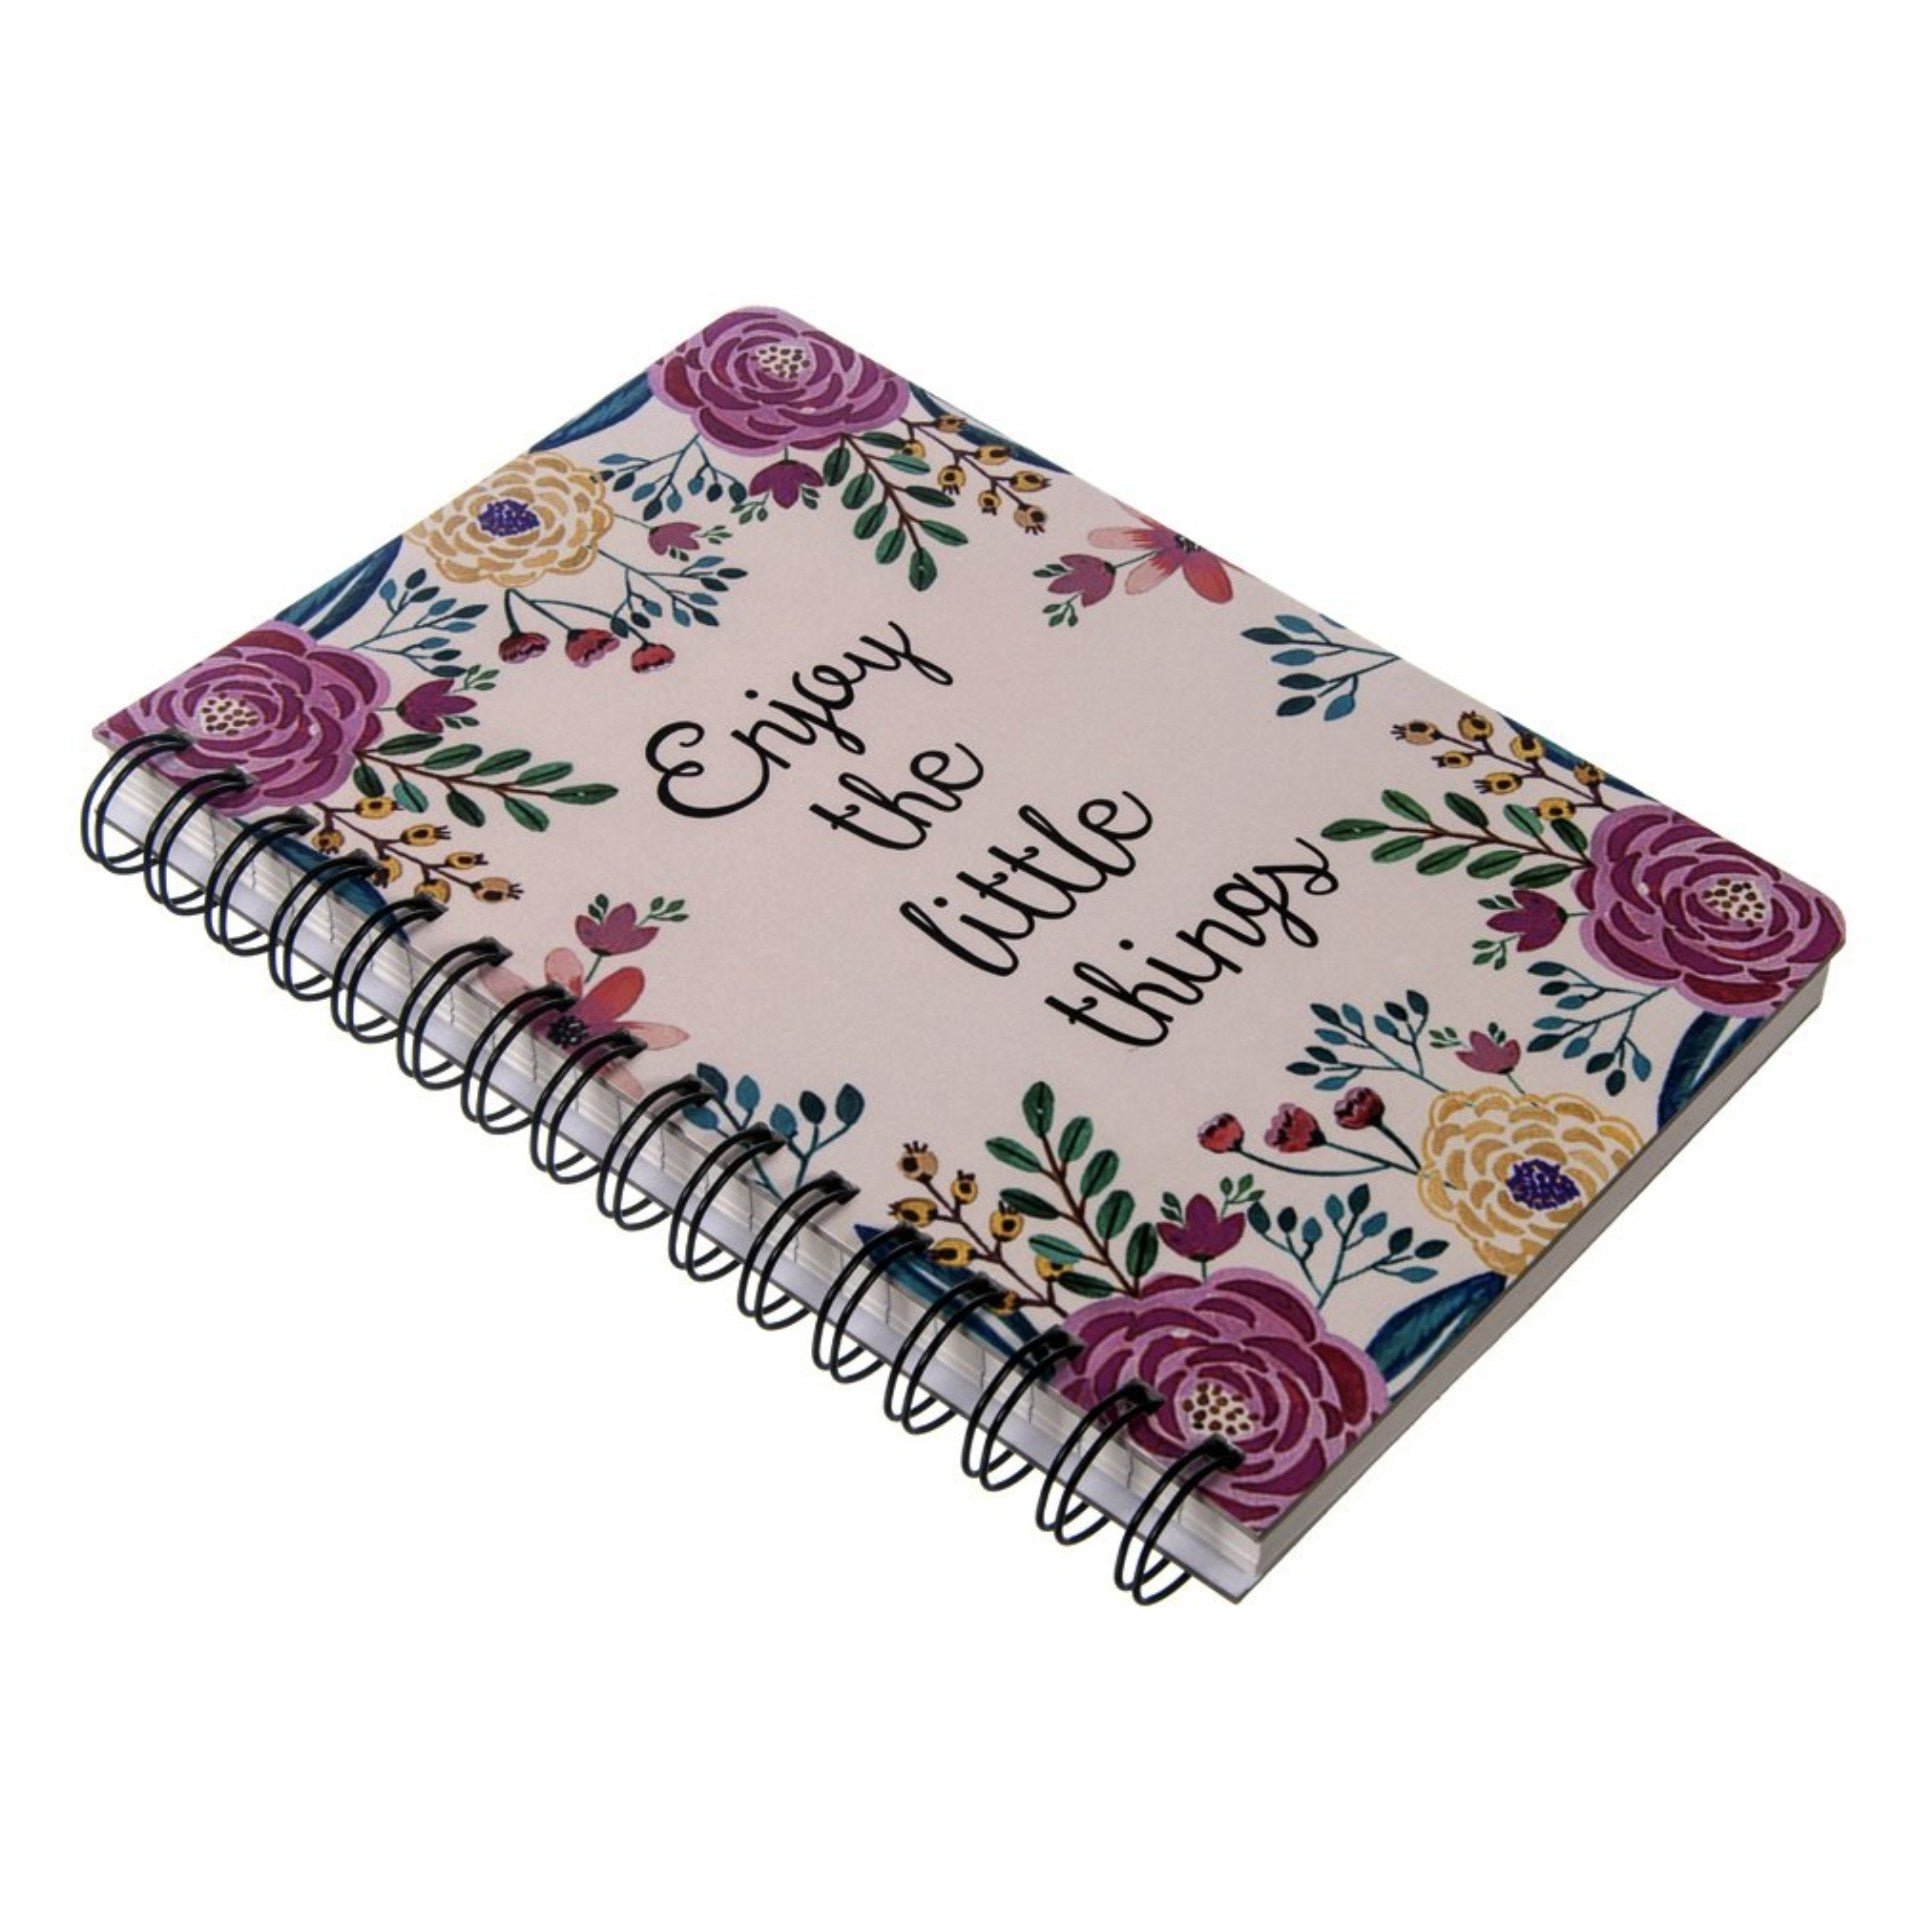 Gifts of Love Viva Notebook A5 - Enjoy the Little Things